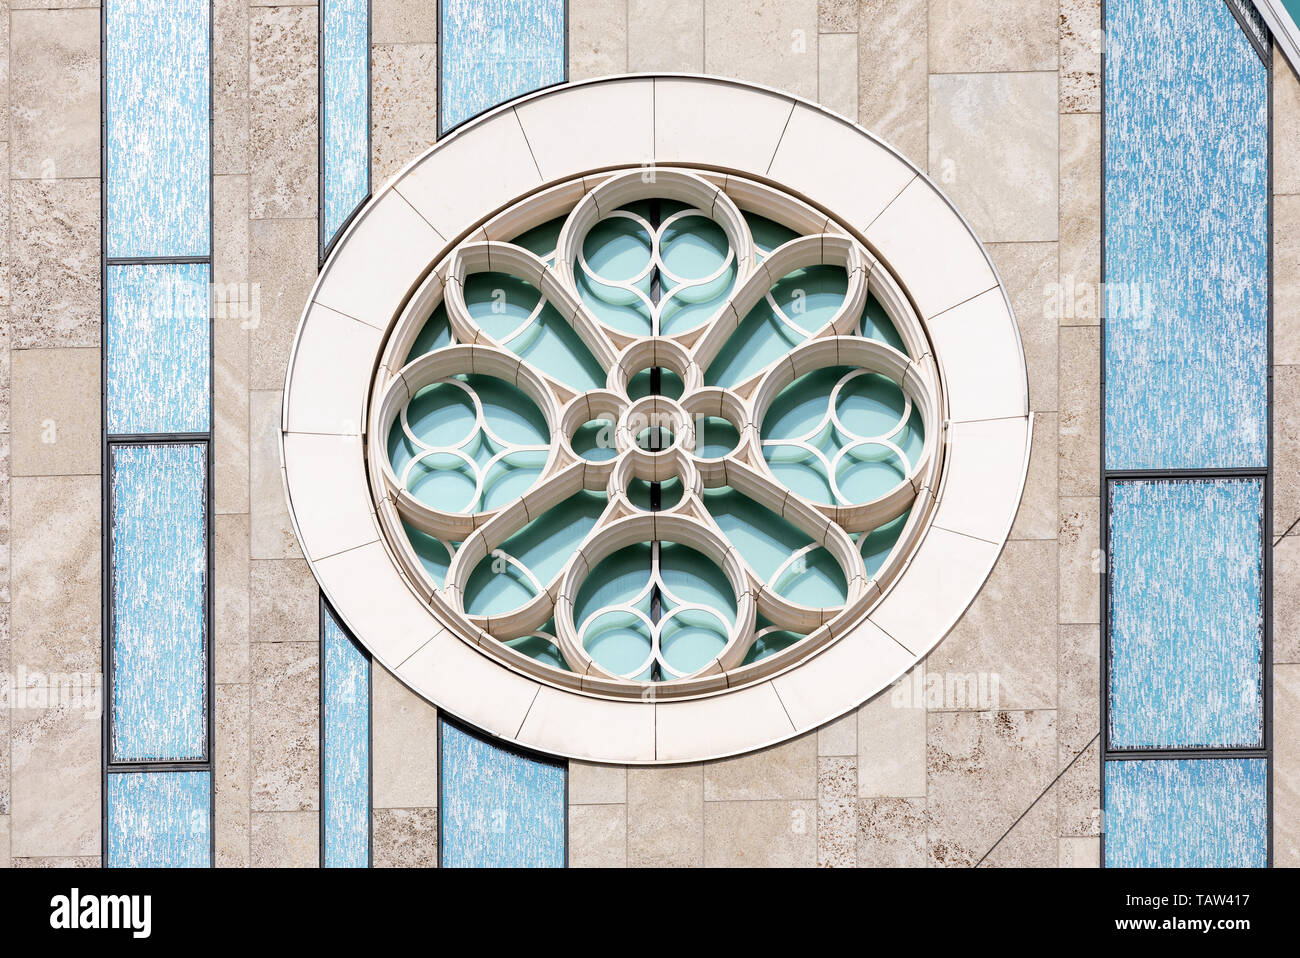 Leipzig, Germany. 08th May, 2019. The rosette of the pallium of the Leipzig University, taken on 08.05.2019. The historic Paulinerkirche/Universitaetskirche, of which this part of the new building is reminiscent, was blown up in GDR times in 1968 and had to give way to the then new building of the Karl-Marx-Universitaet. Credit: Thomas Schulze/dpa-Zentralbild/ZB/dpa/Alamy Live News - Stock Image